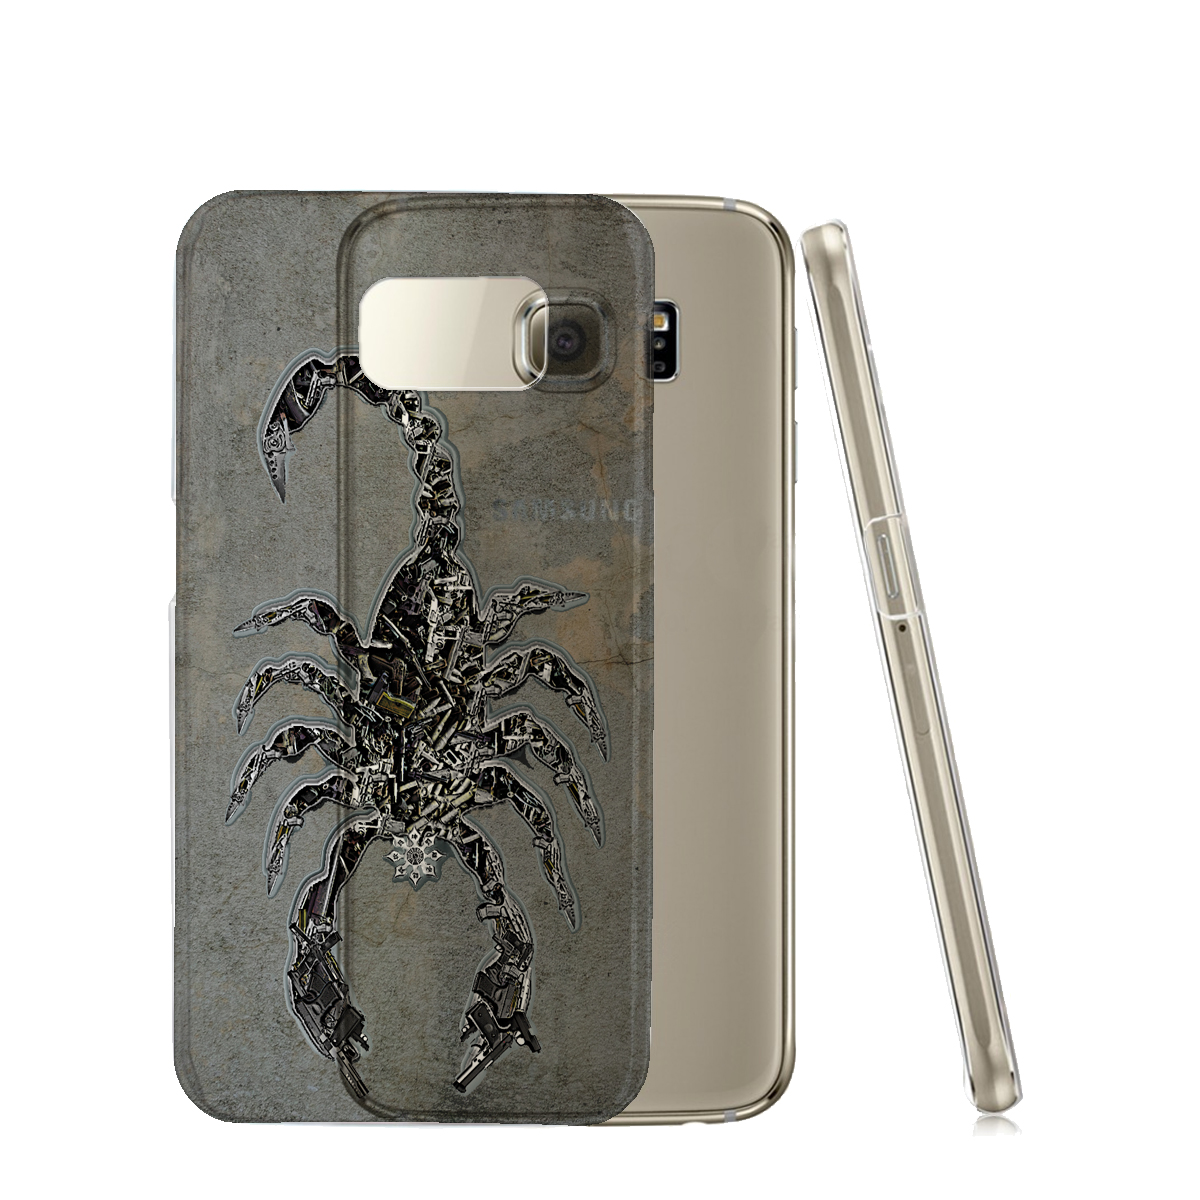 KuzmarK™ Samsung Galaxy S6 Edge Clear Cover Case - Scorpion Weapons Knives